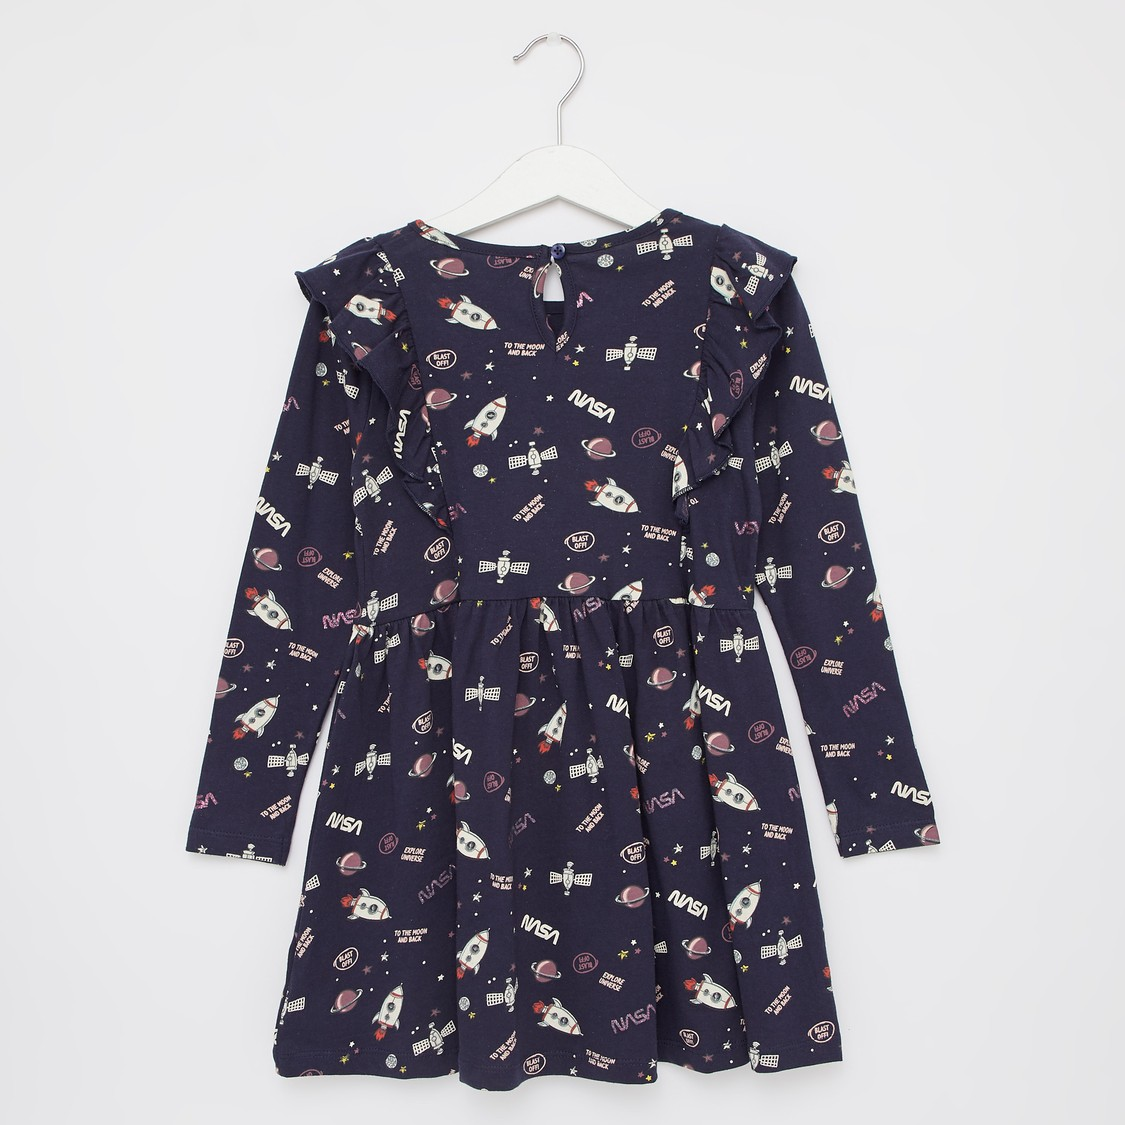 Printed Round Neck Dress with Long Sleeves and Ruffle Detail